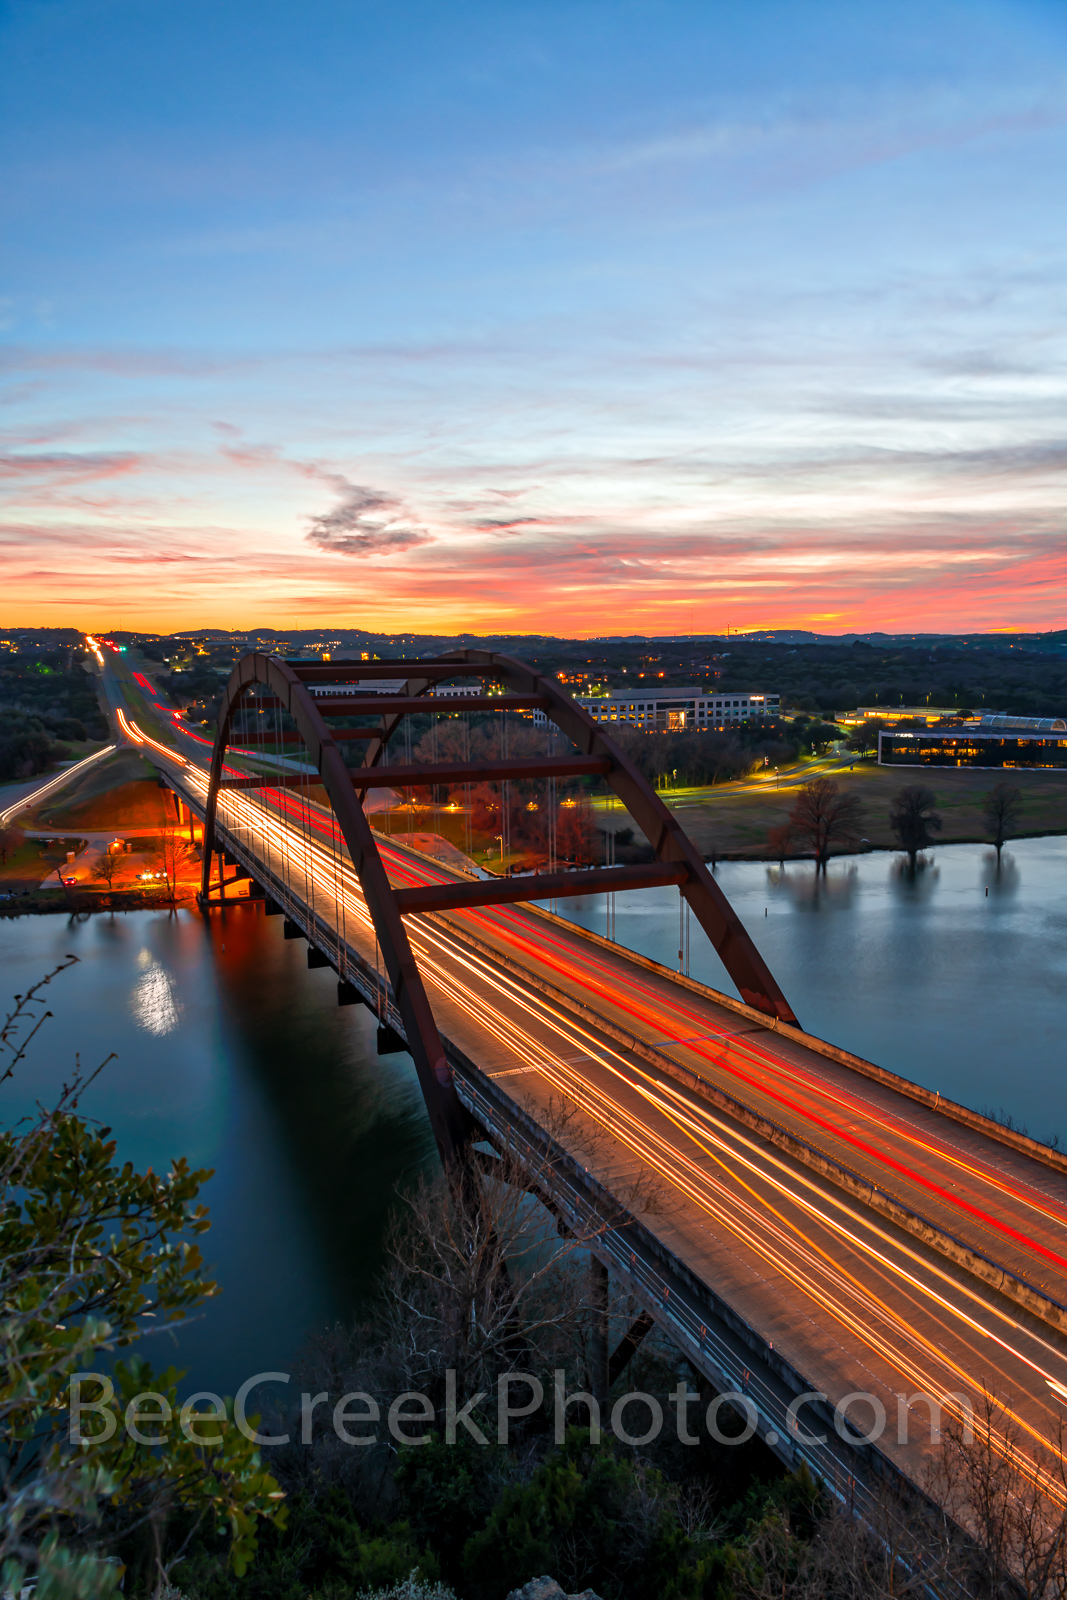 Austin, Pennybacker, bridge, 360 bridge,night, dark, sunset, vertical, Lake Austin, colors, texas hill country,texas scenery, boats, hill country, texas landscape, recreational, boating, swimming, pic, photo